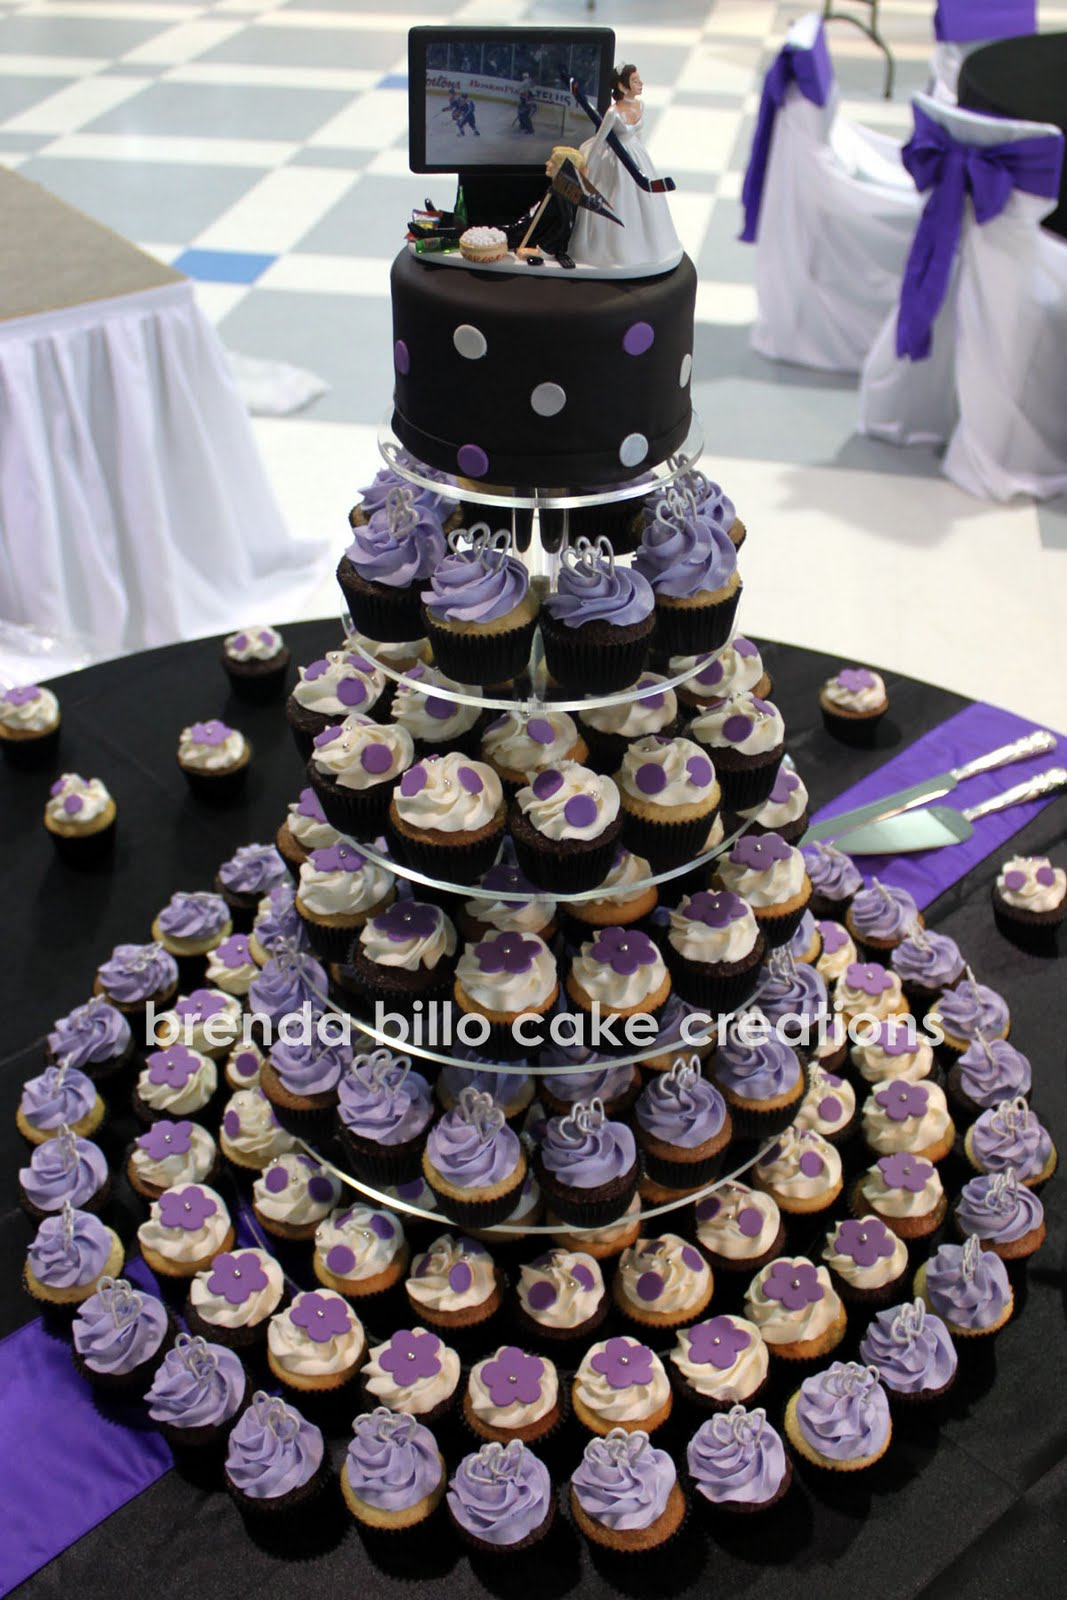 Brenda Billo Cake Creations purple & black cupcakes